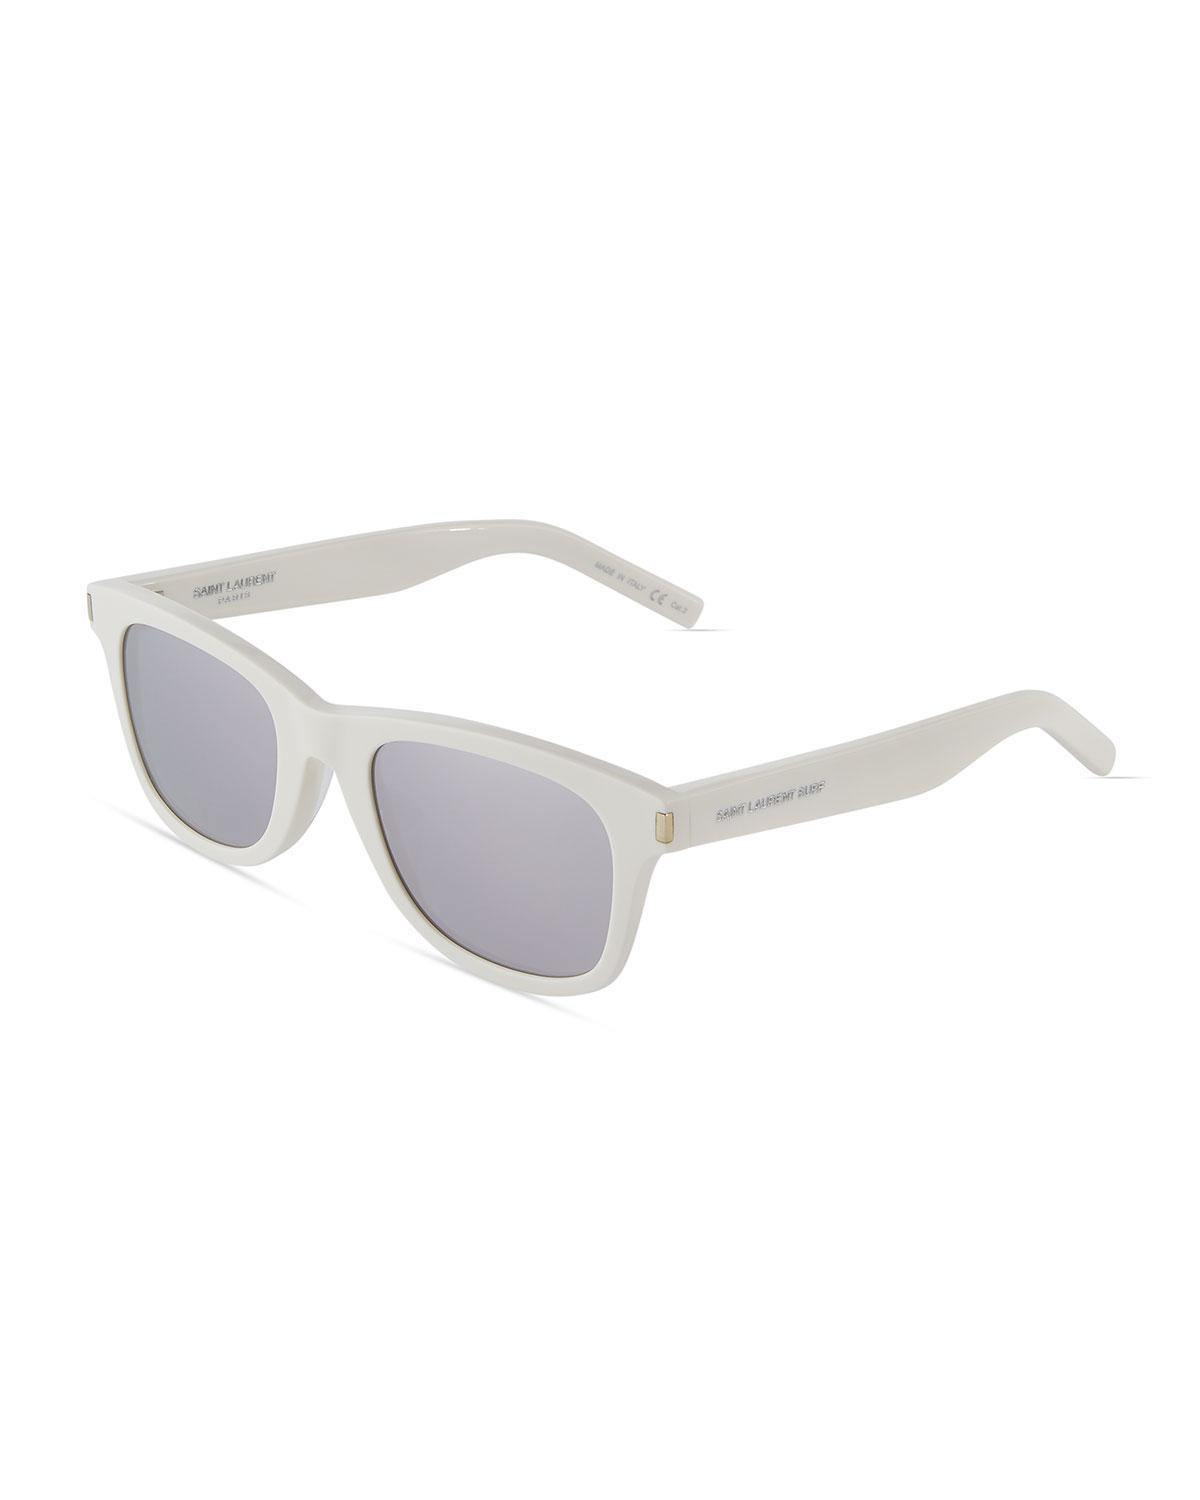 2afdcbacba Lyst - Saint Laurent Surf Square Acetate Sunglasses in White